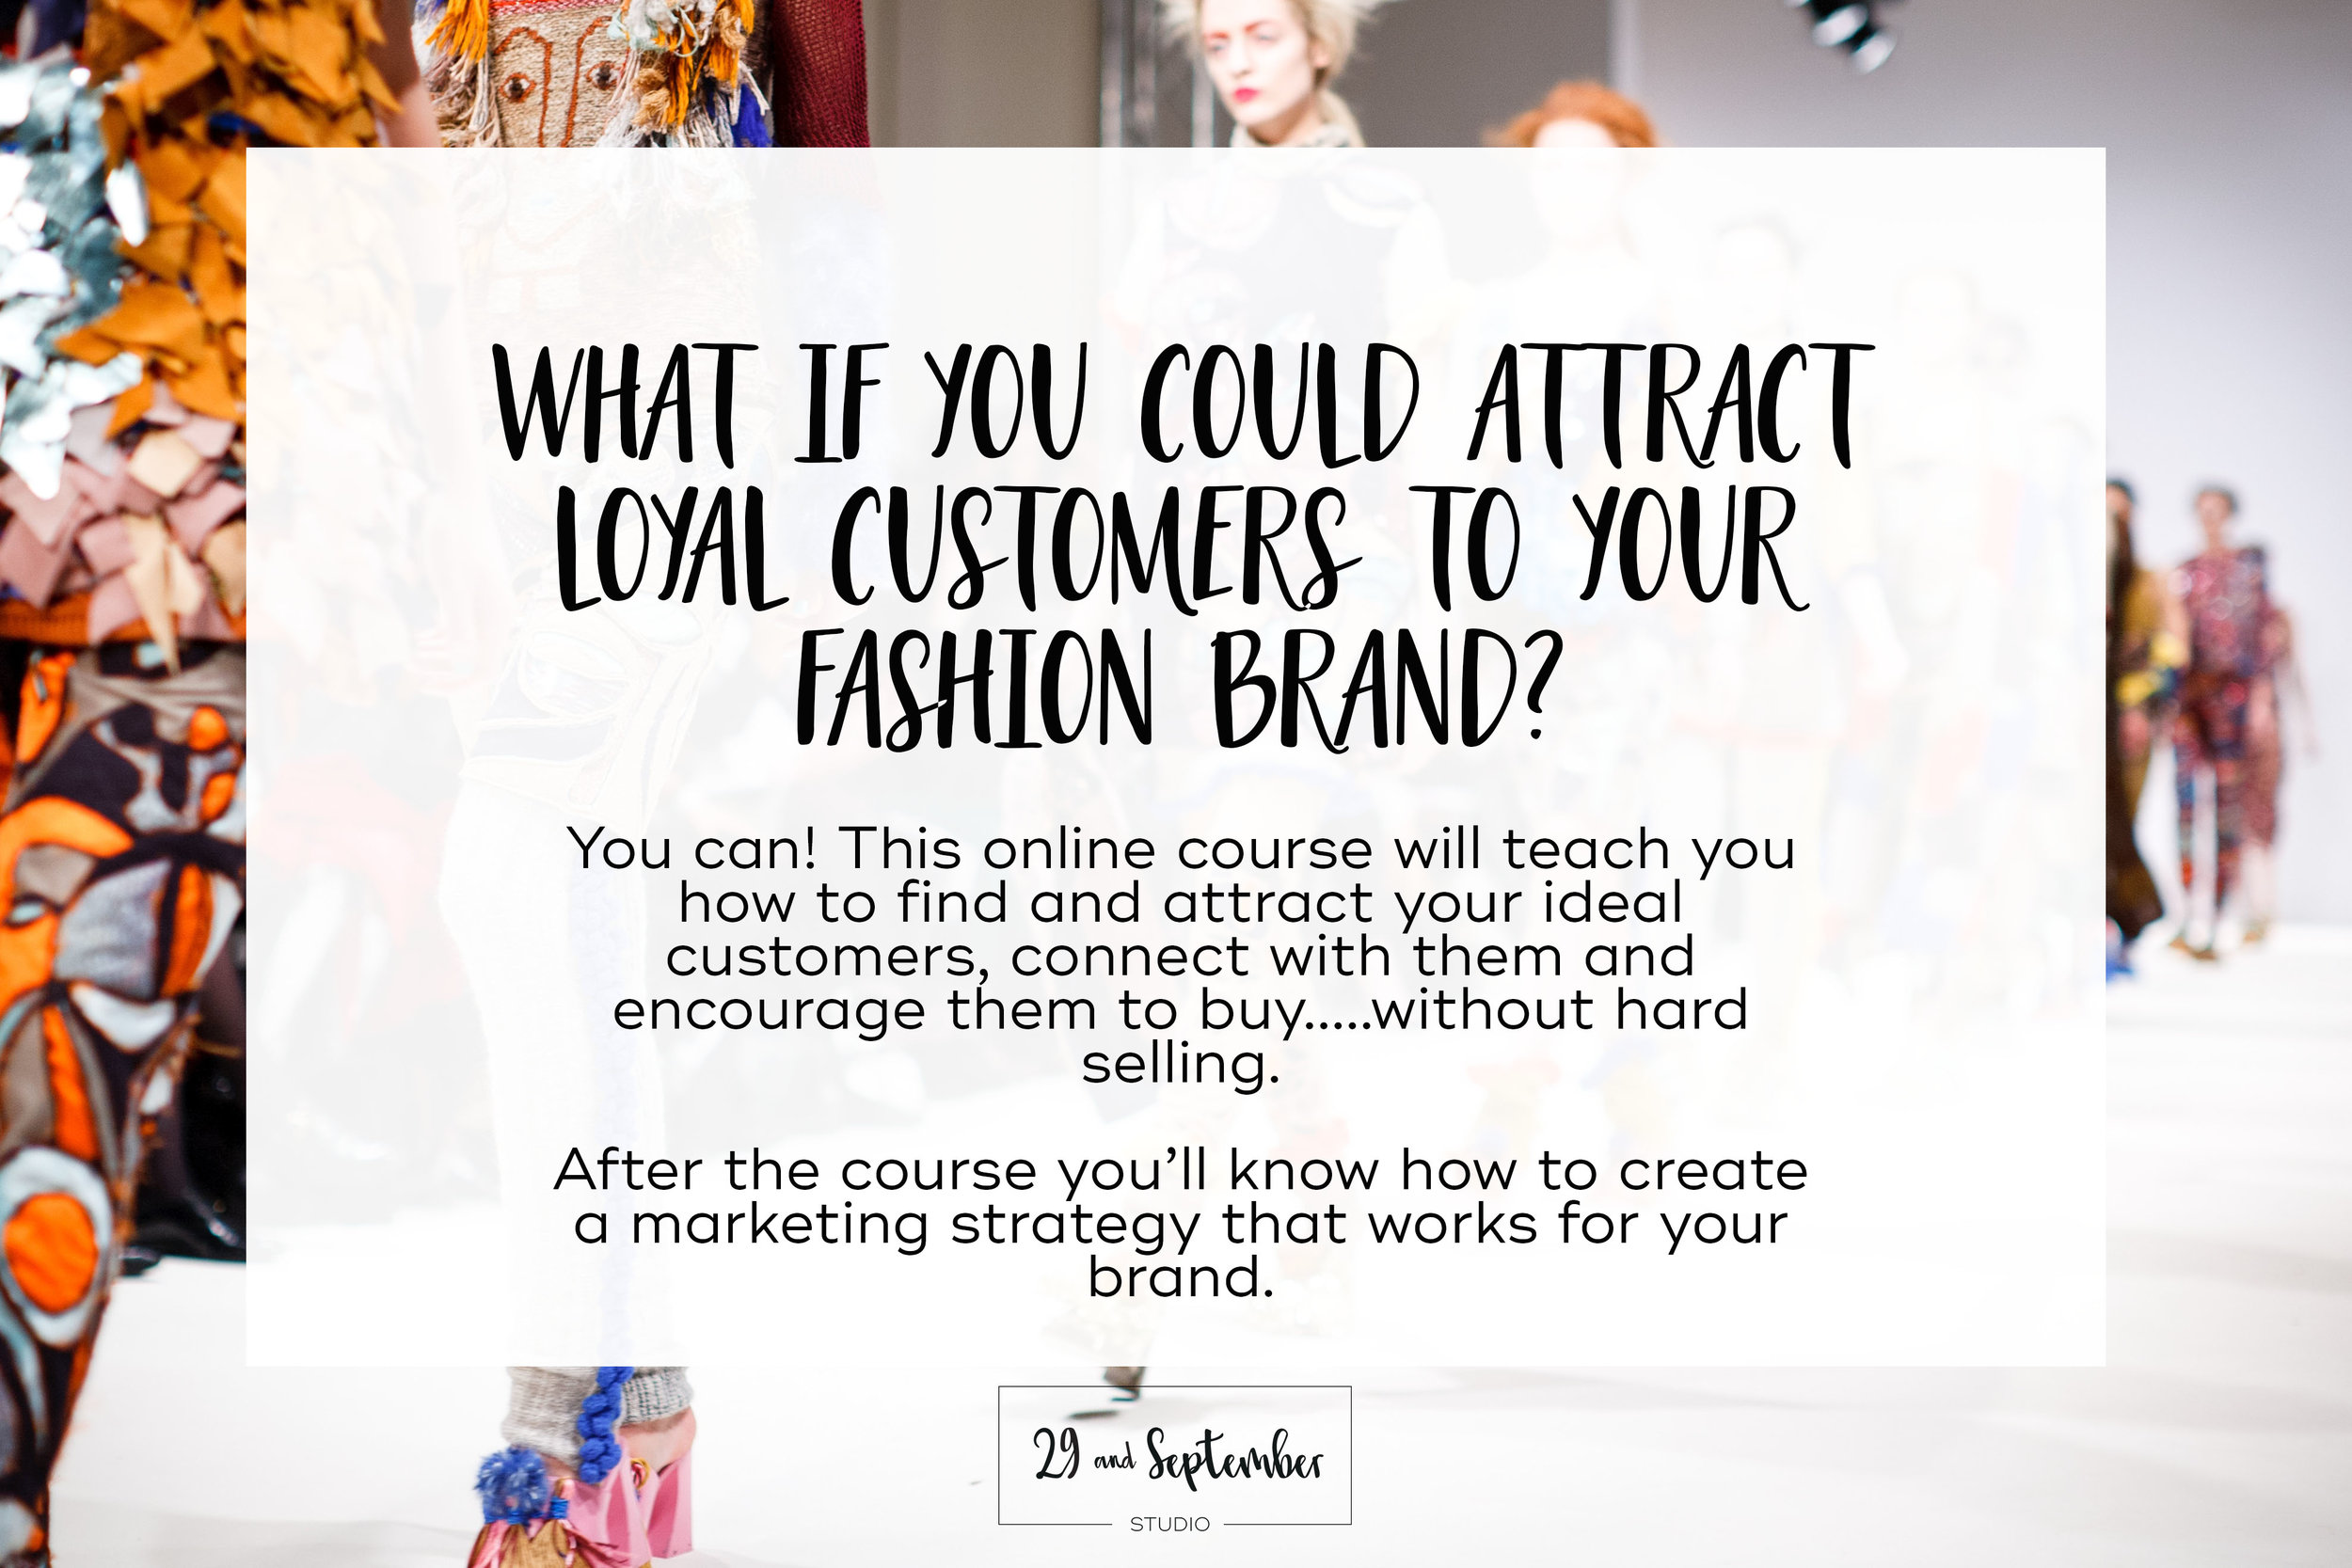 How to Attract Loyal Customers to Your Fashion Brand | How to get customers to my business | Marketing for fashion labels